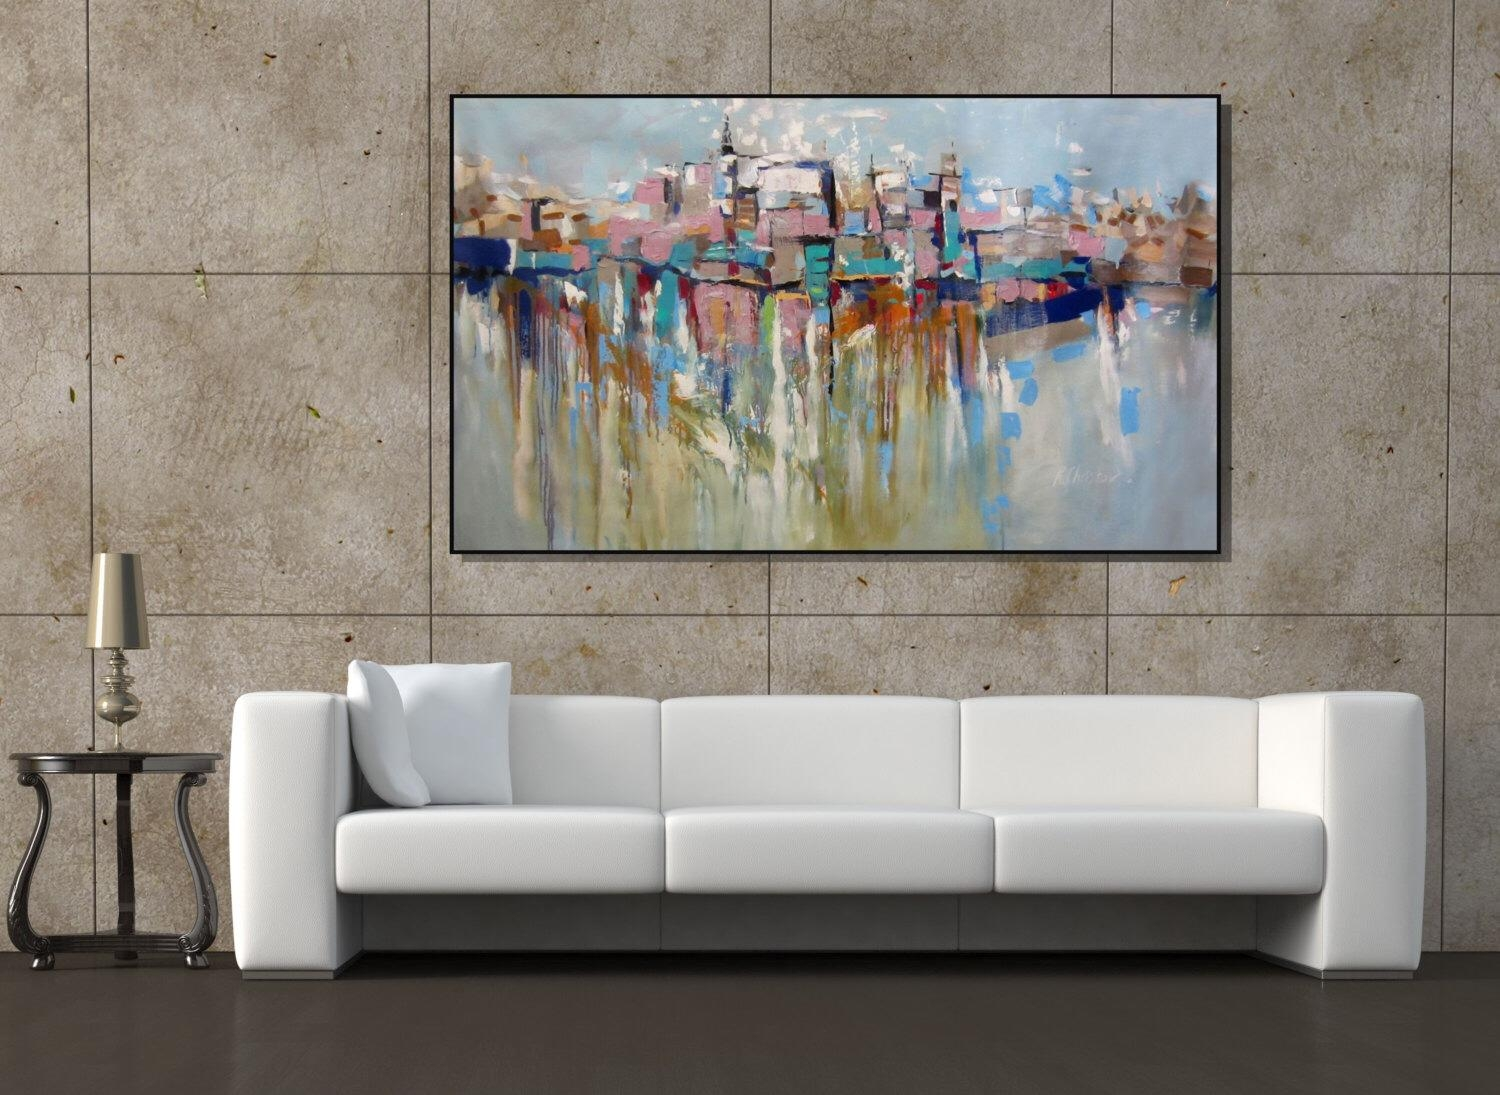 Ergonomic Wall Design Large Canvas Print Rustic Extra Large Wall Throughout Art For Large Wall (Image 9 of 20)